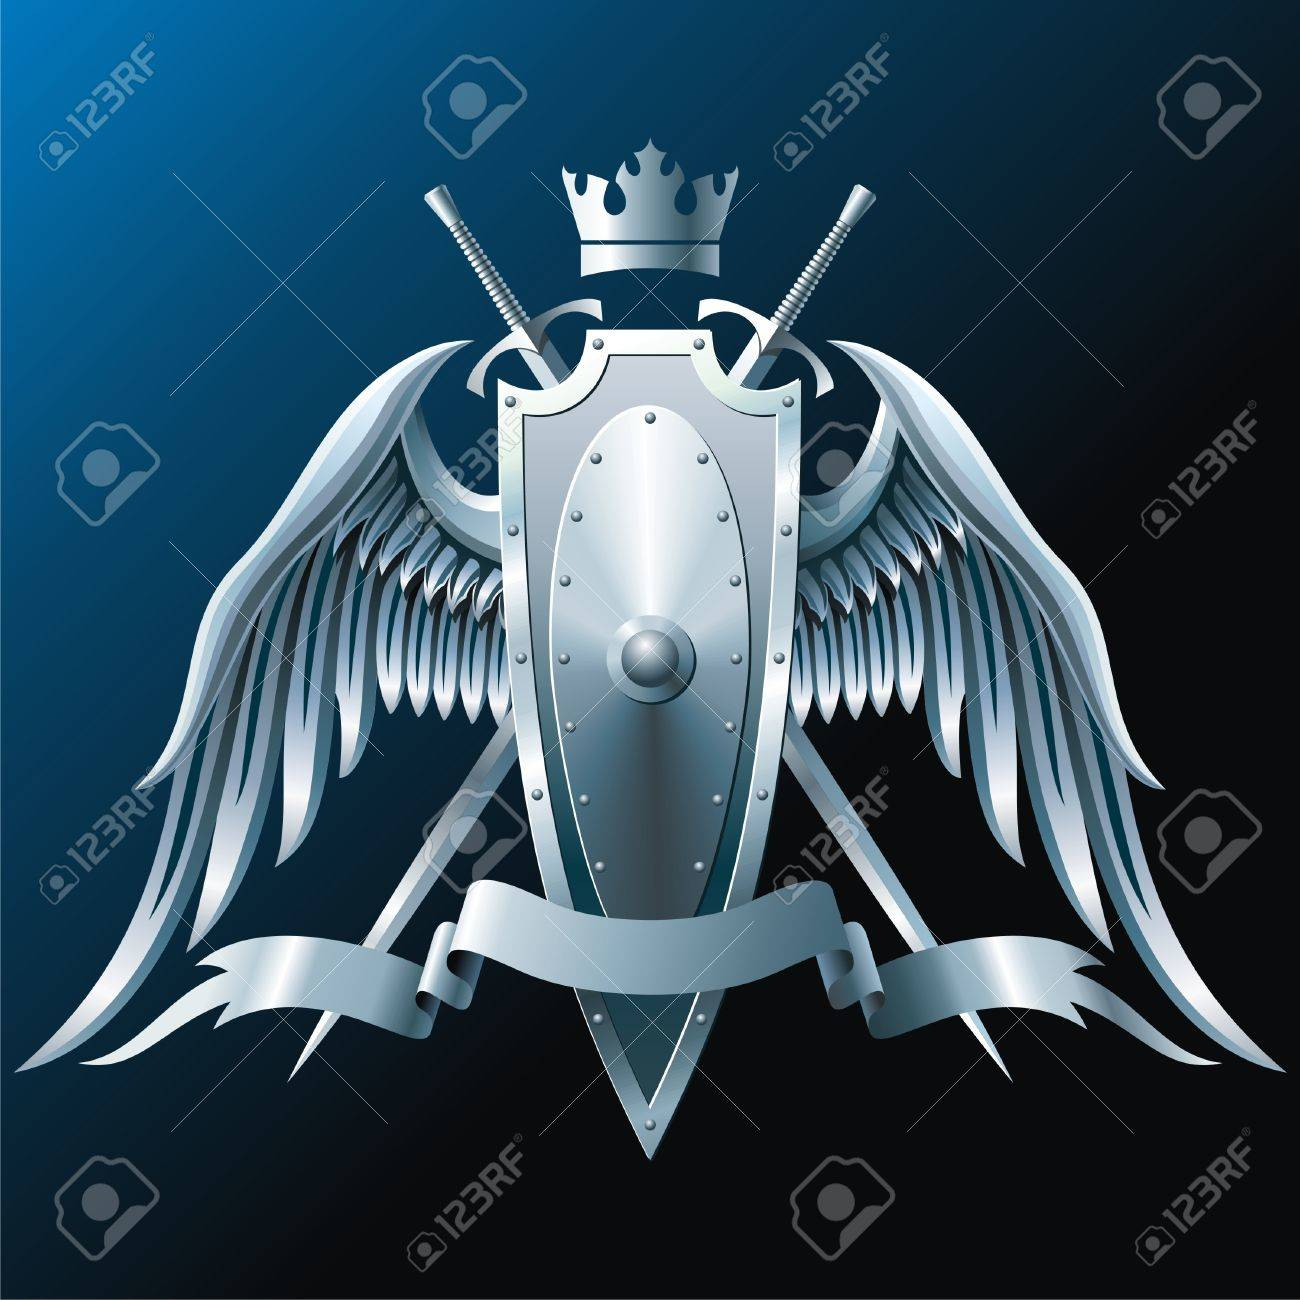 Sword With Wings Logo Composition With Crown Swords